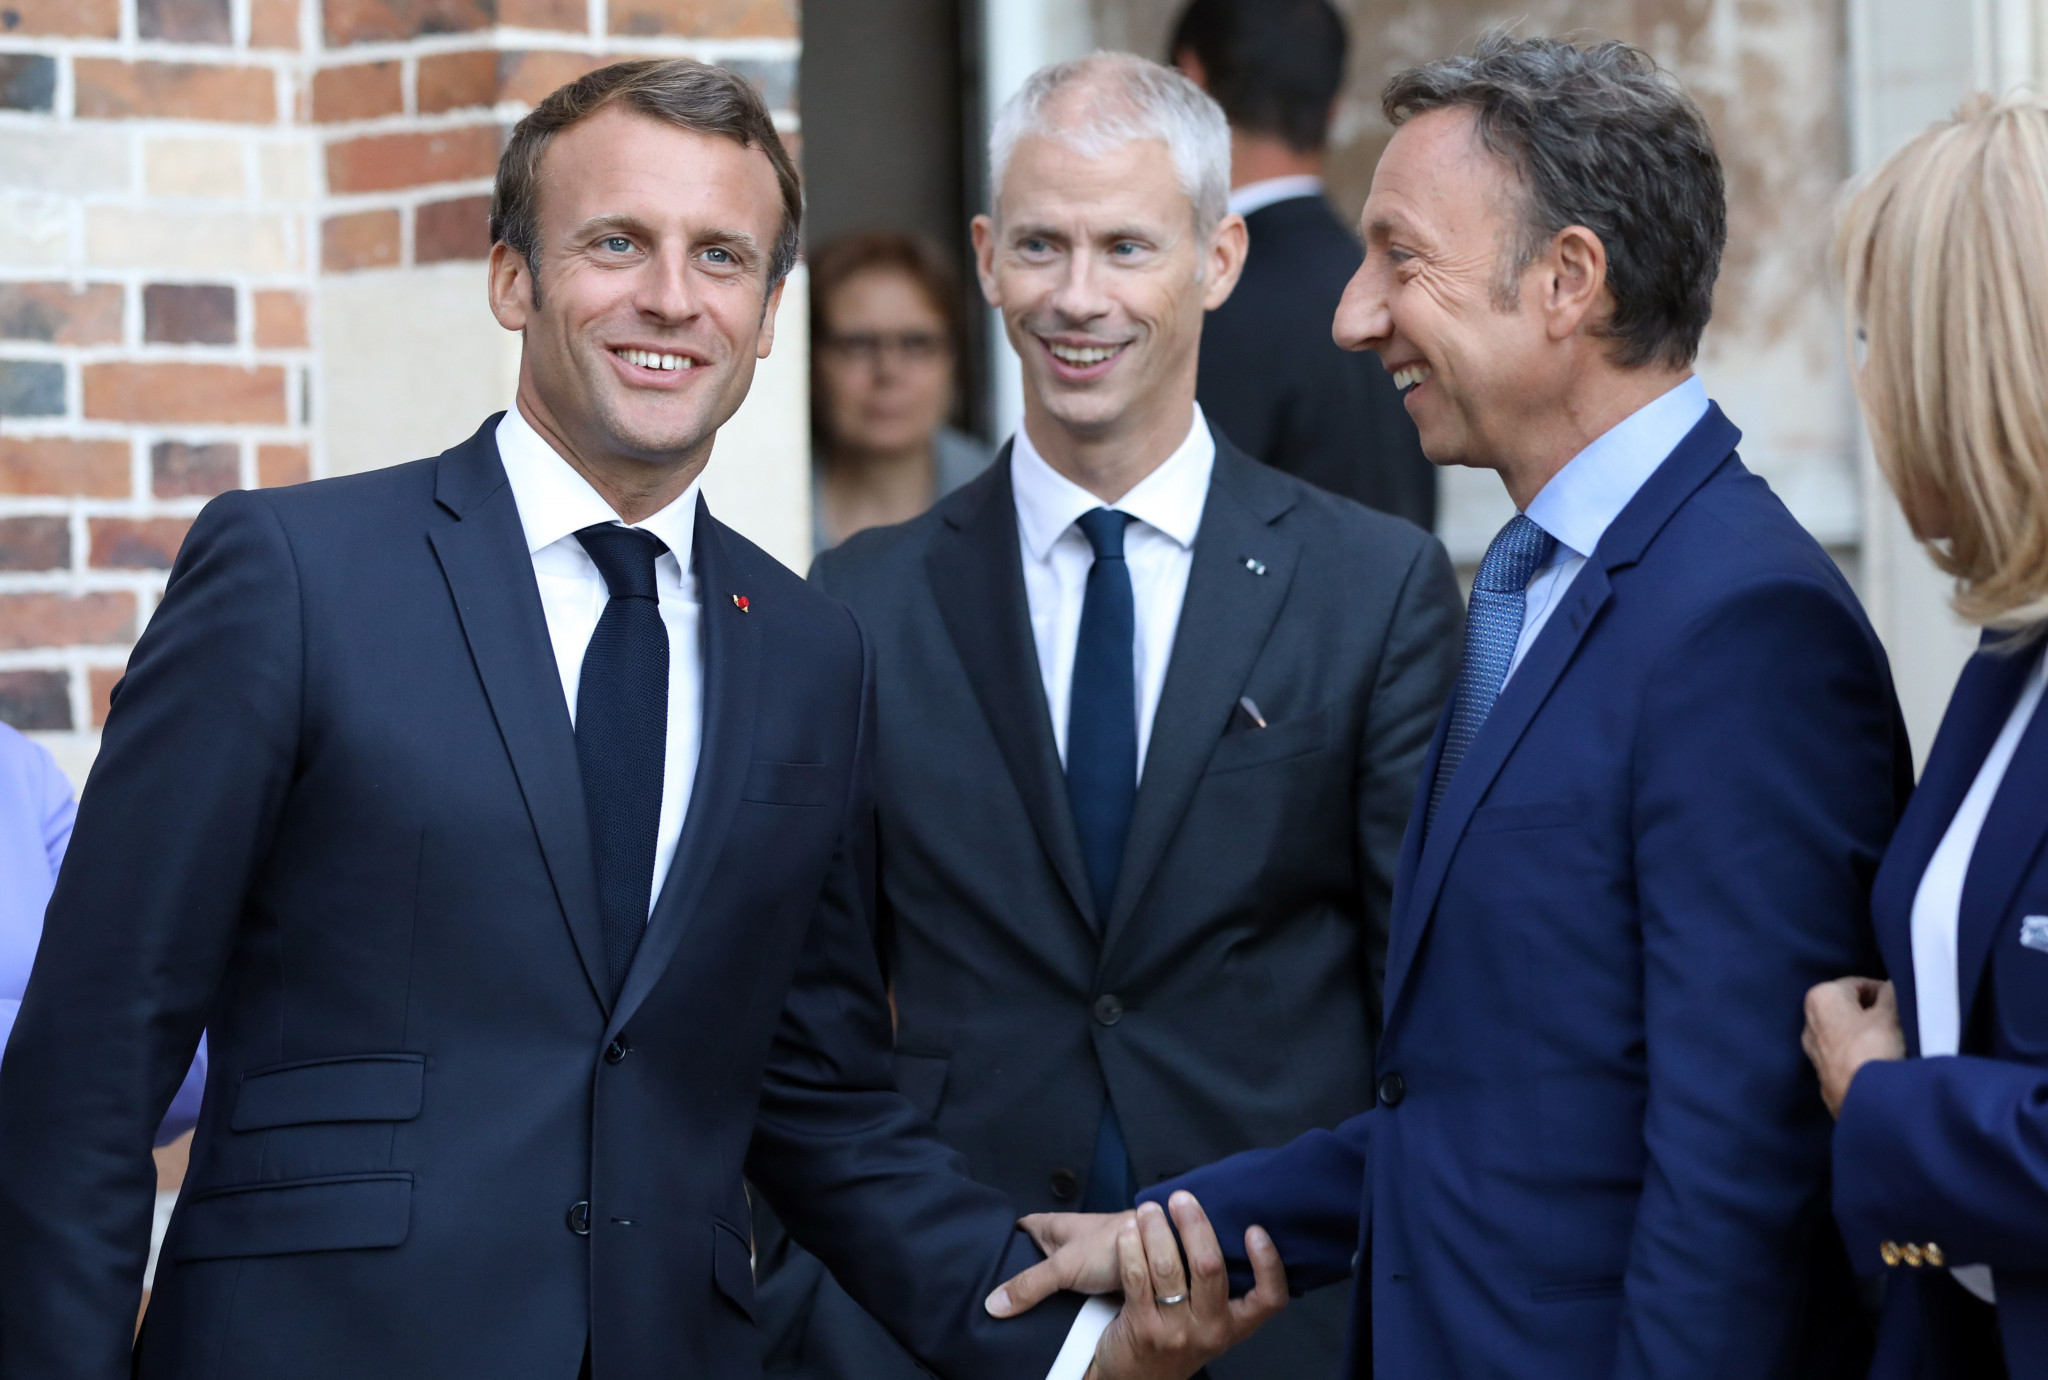 French President Emmanuel Macron has conferred his high patronage to the project ©Getty Images